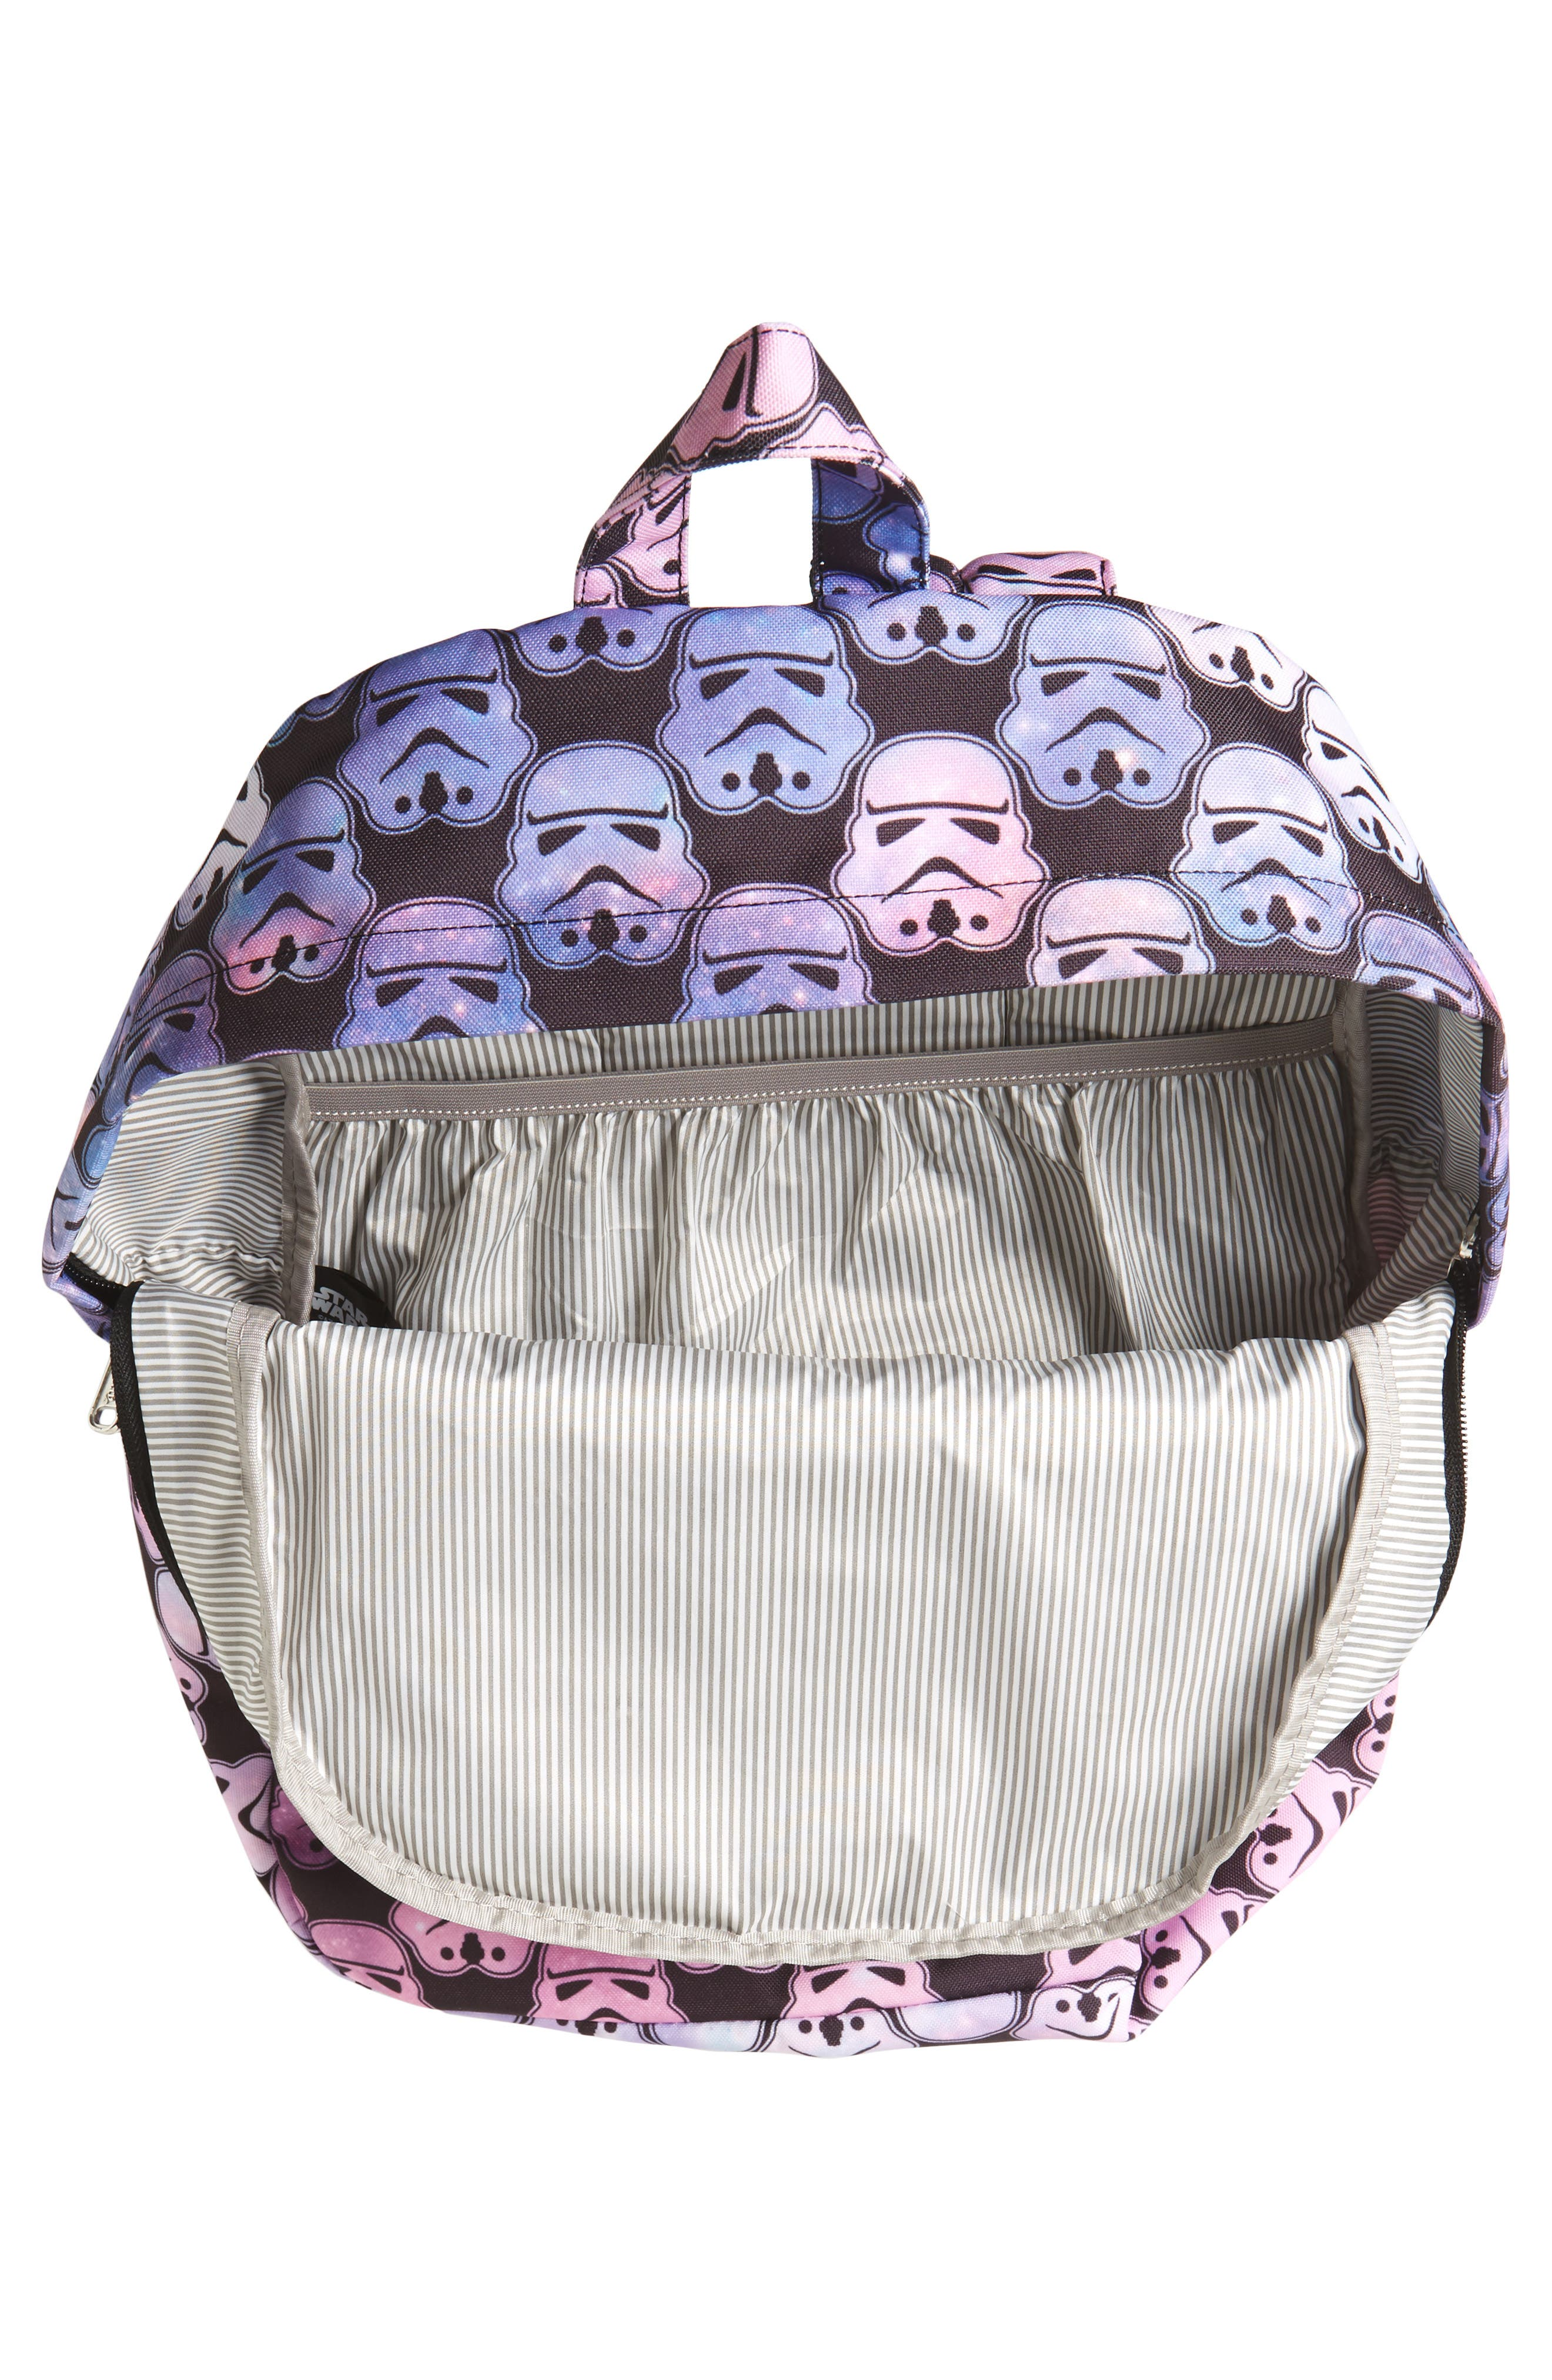 Star Wars<sup>™</sup> Stormtrooper Galaxy Backpack,                             Alternate thumbnail 3, color,                             Multi Black